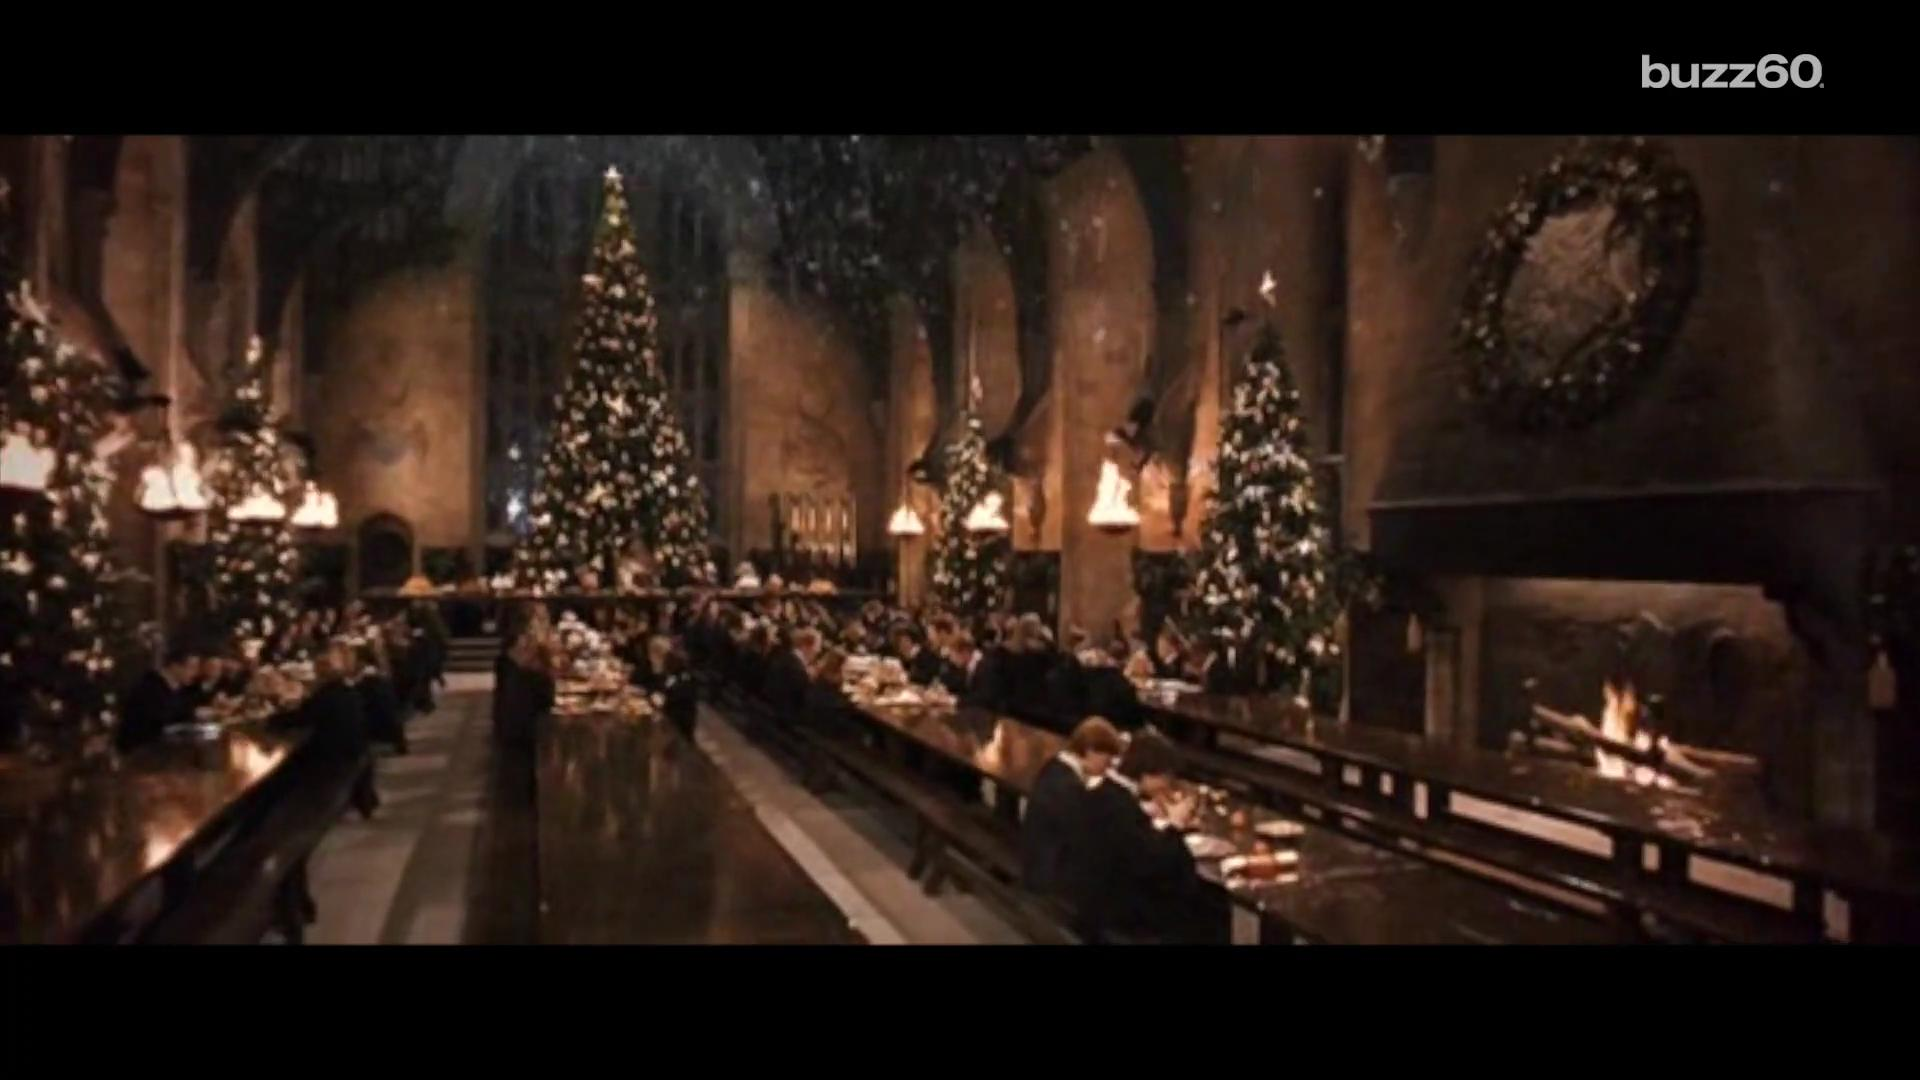 You can eat in the real Great Hall from 'Harry Potter'